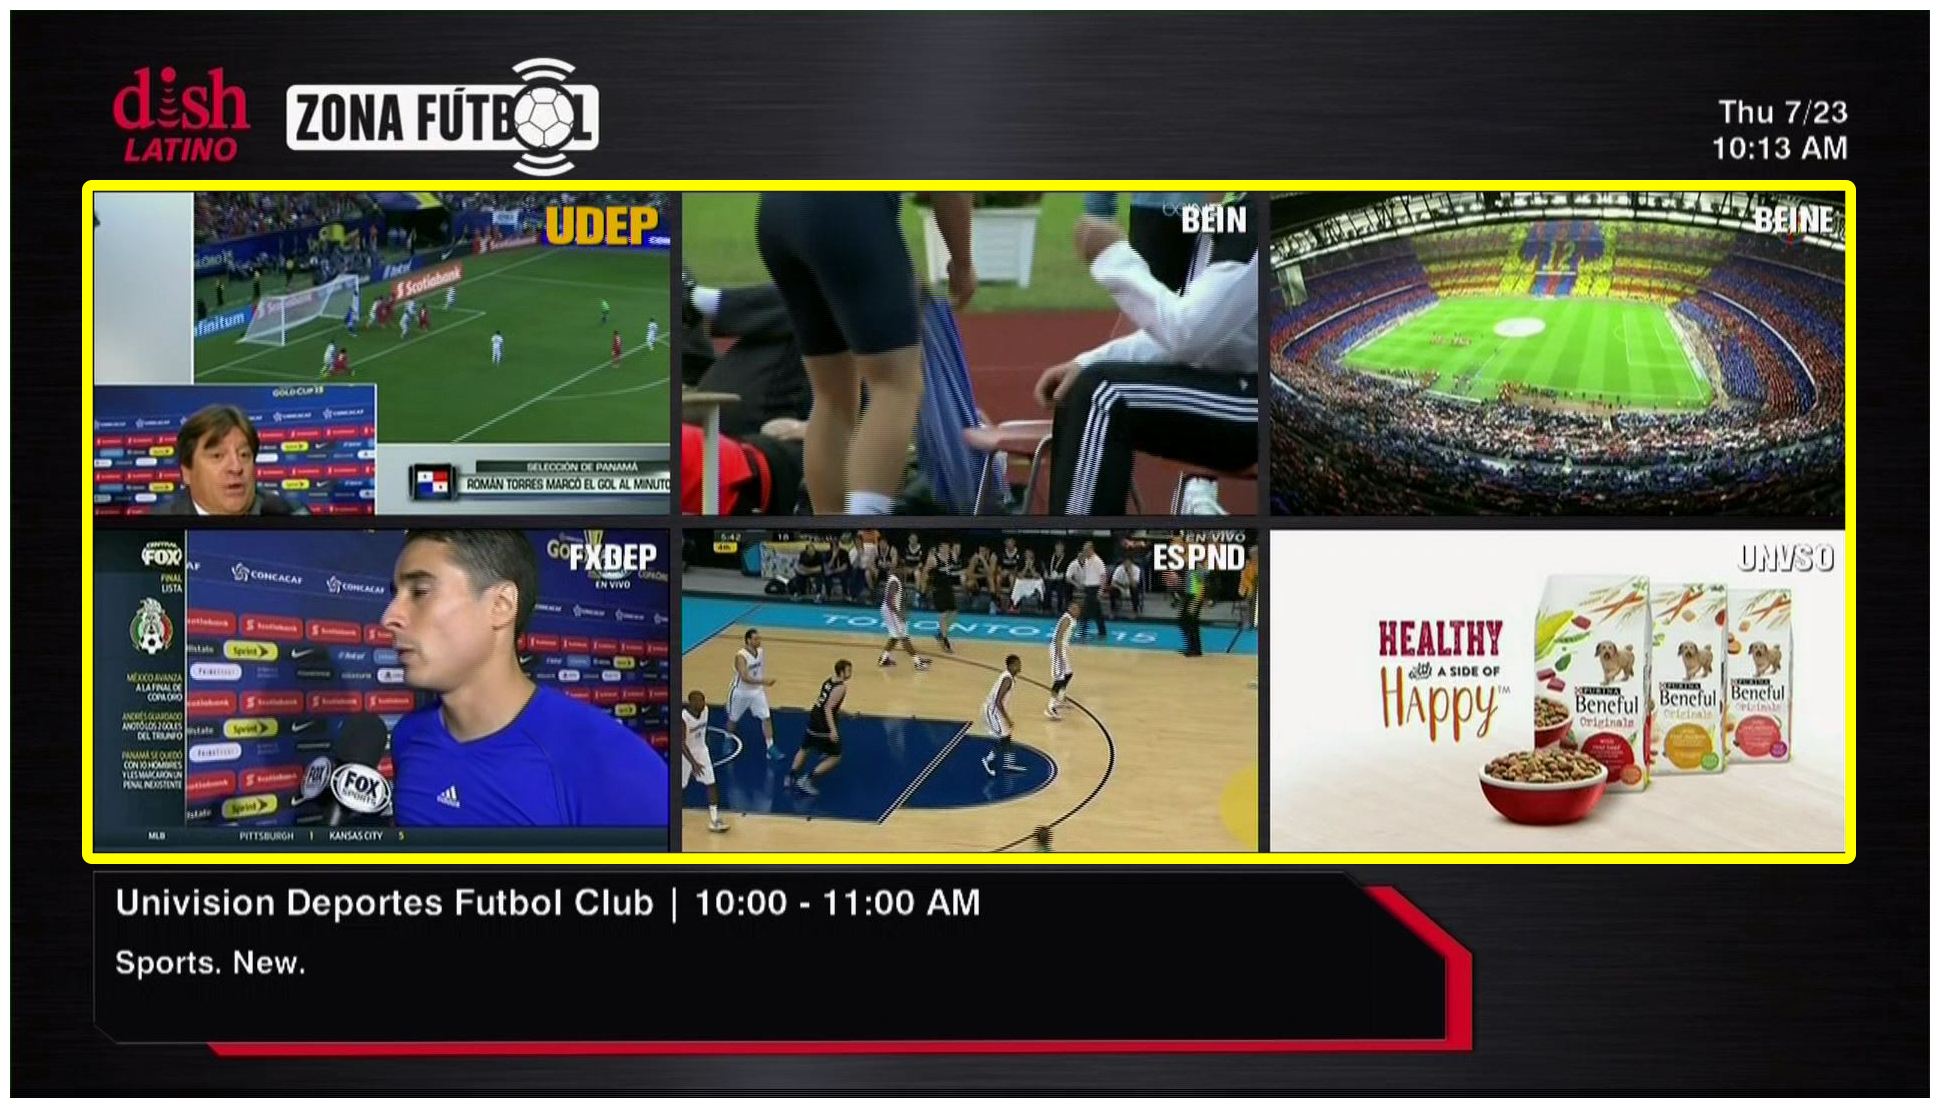 Grid of 6 live sports programs (Use the remote control to move through the grid of menu options.)